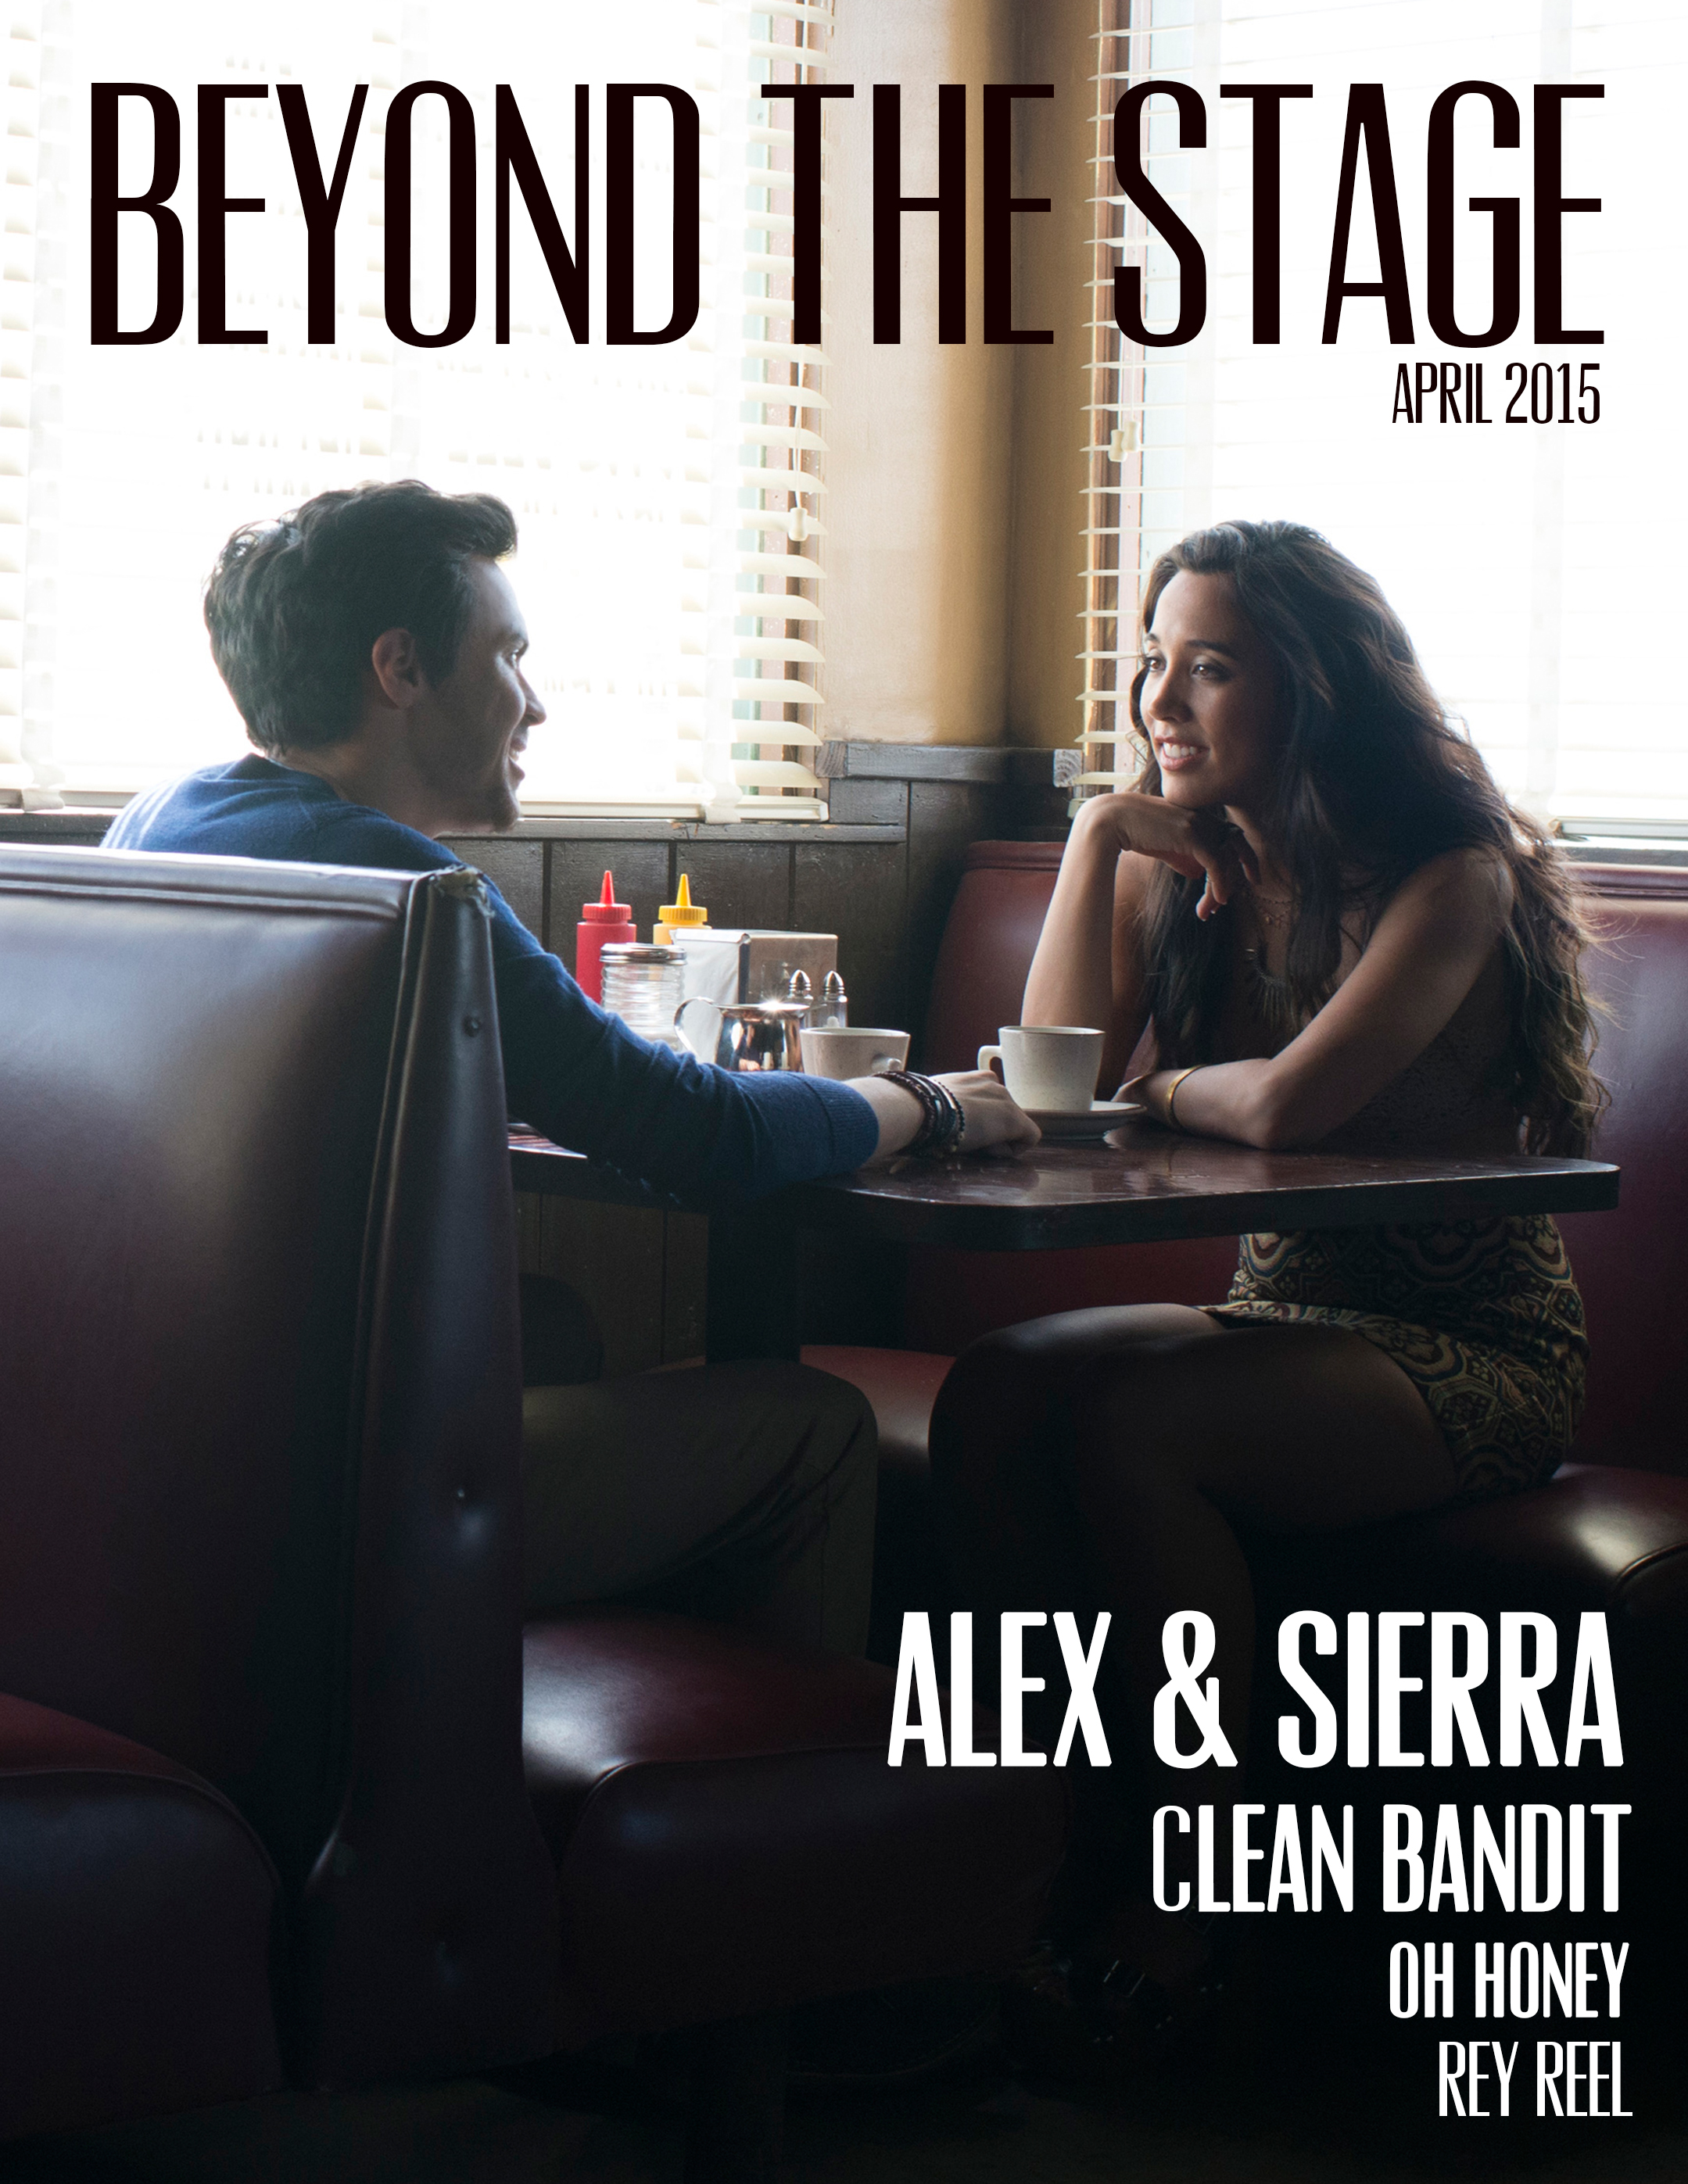 Alex & Sierra Cover 1 (1).jpg